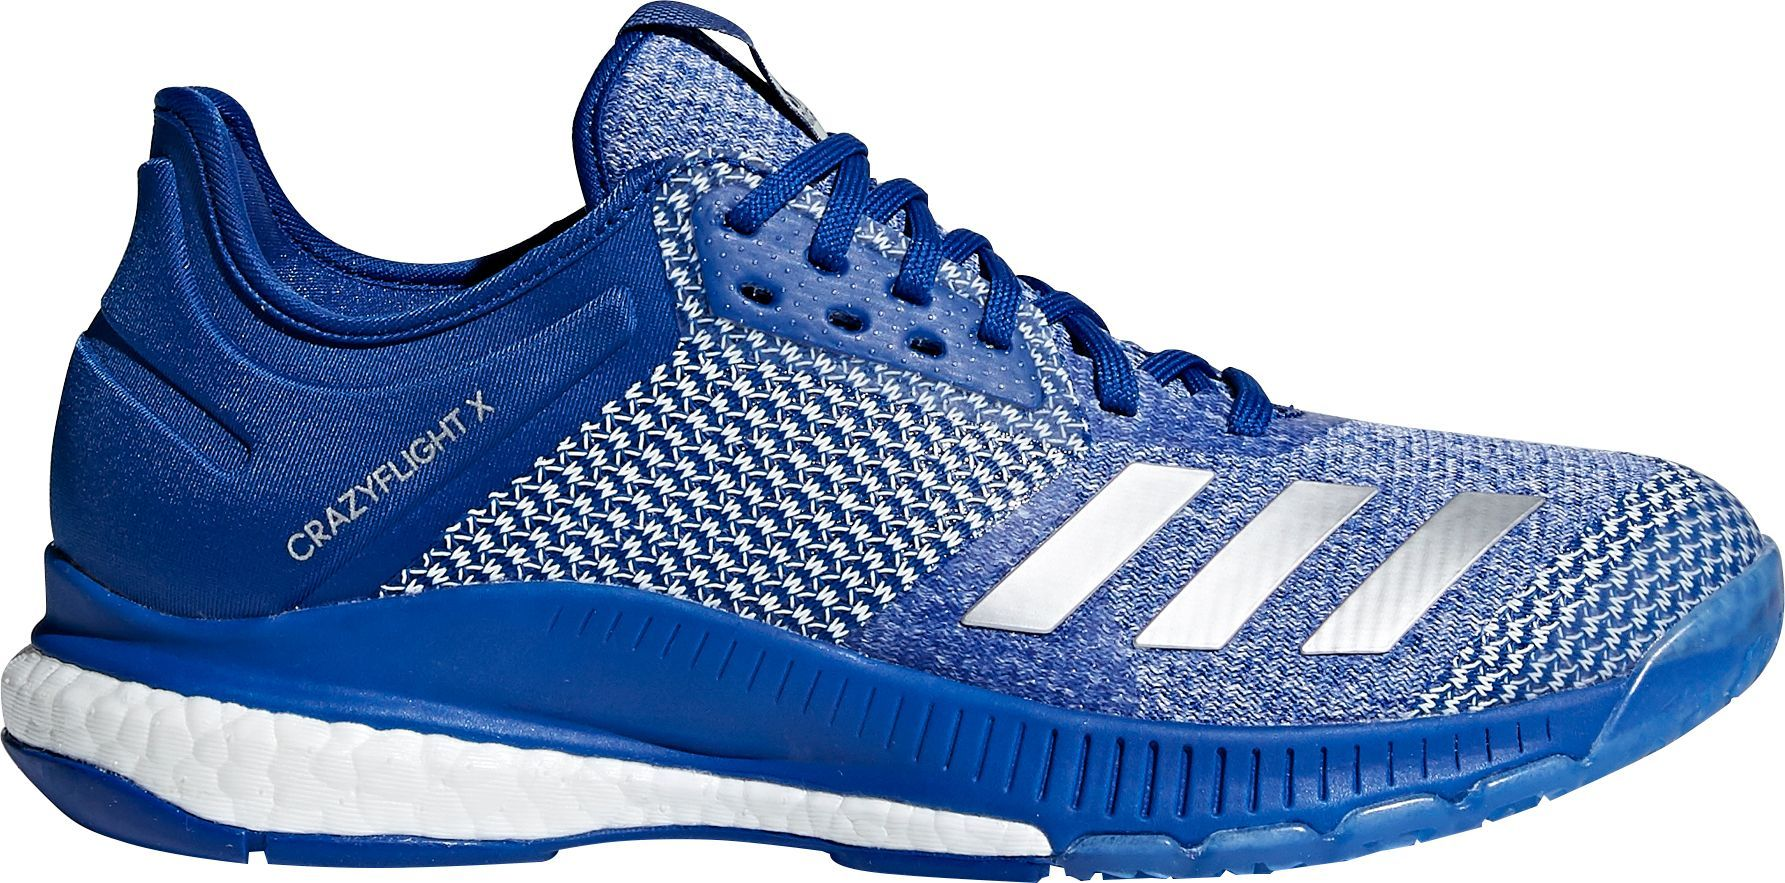 Adidas Women S Crazyflight X 2 0 Volleyball Shoes Size 10 0 Blue Silver Volleyball Shoes Adidas Women Adidas